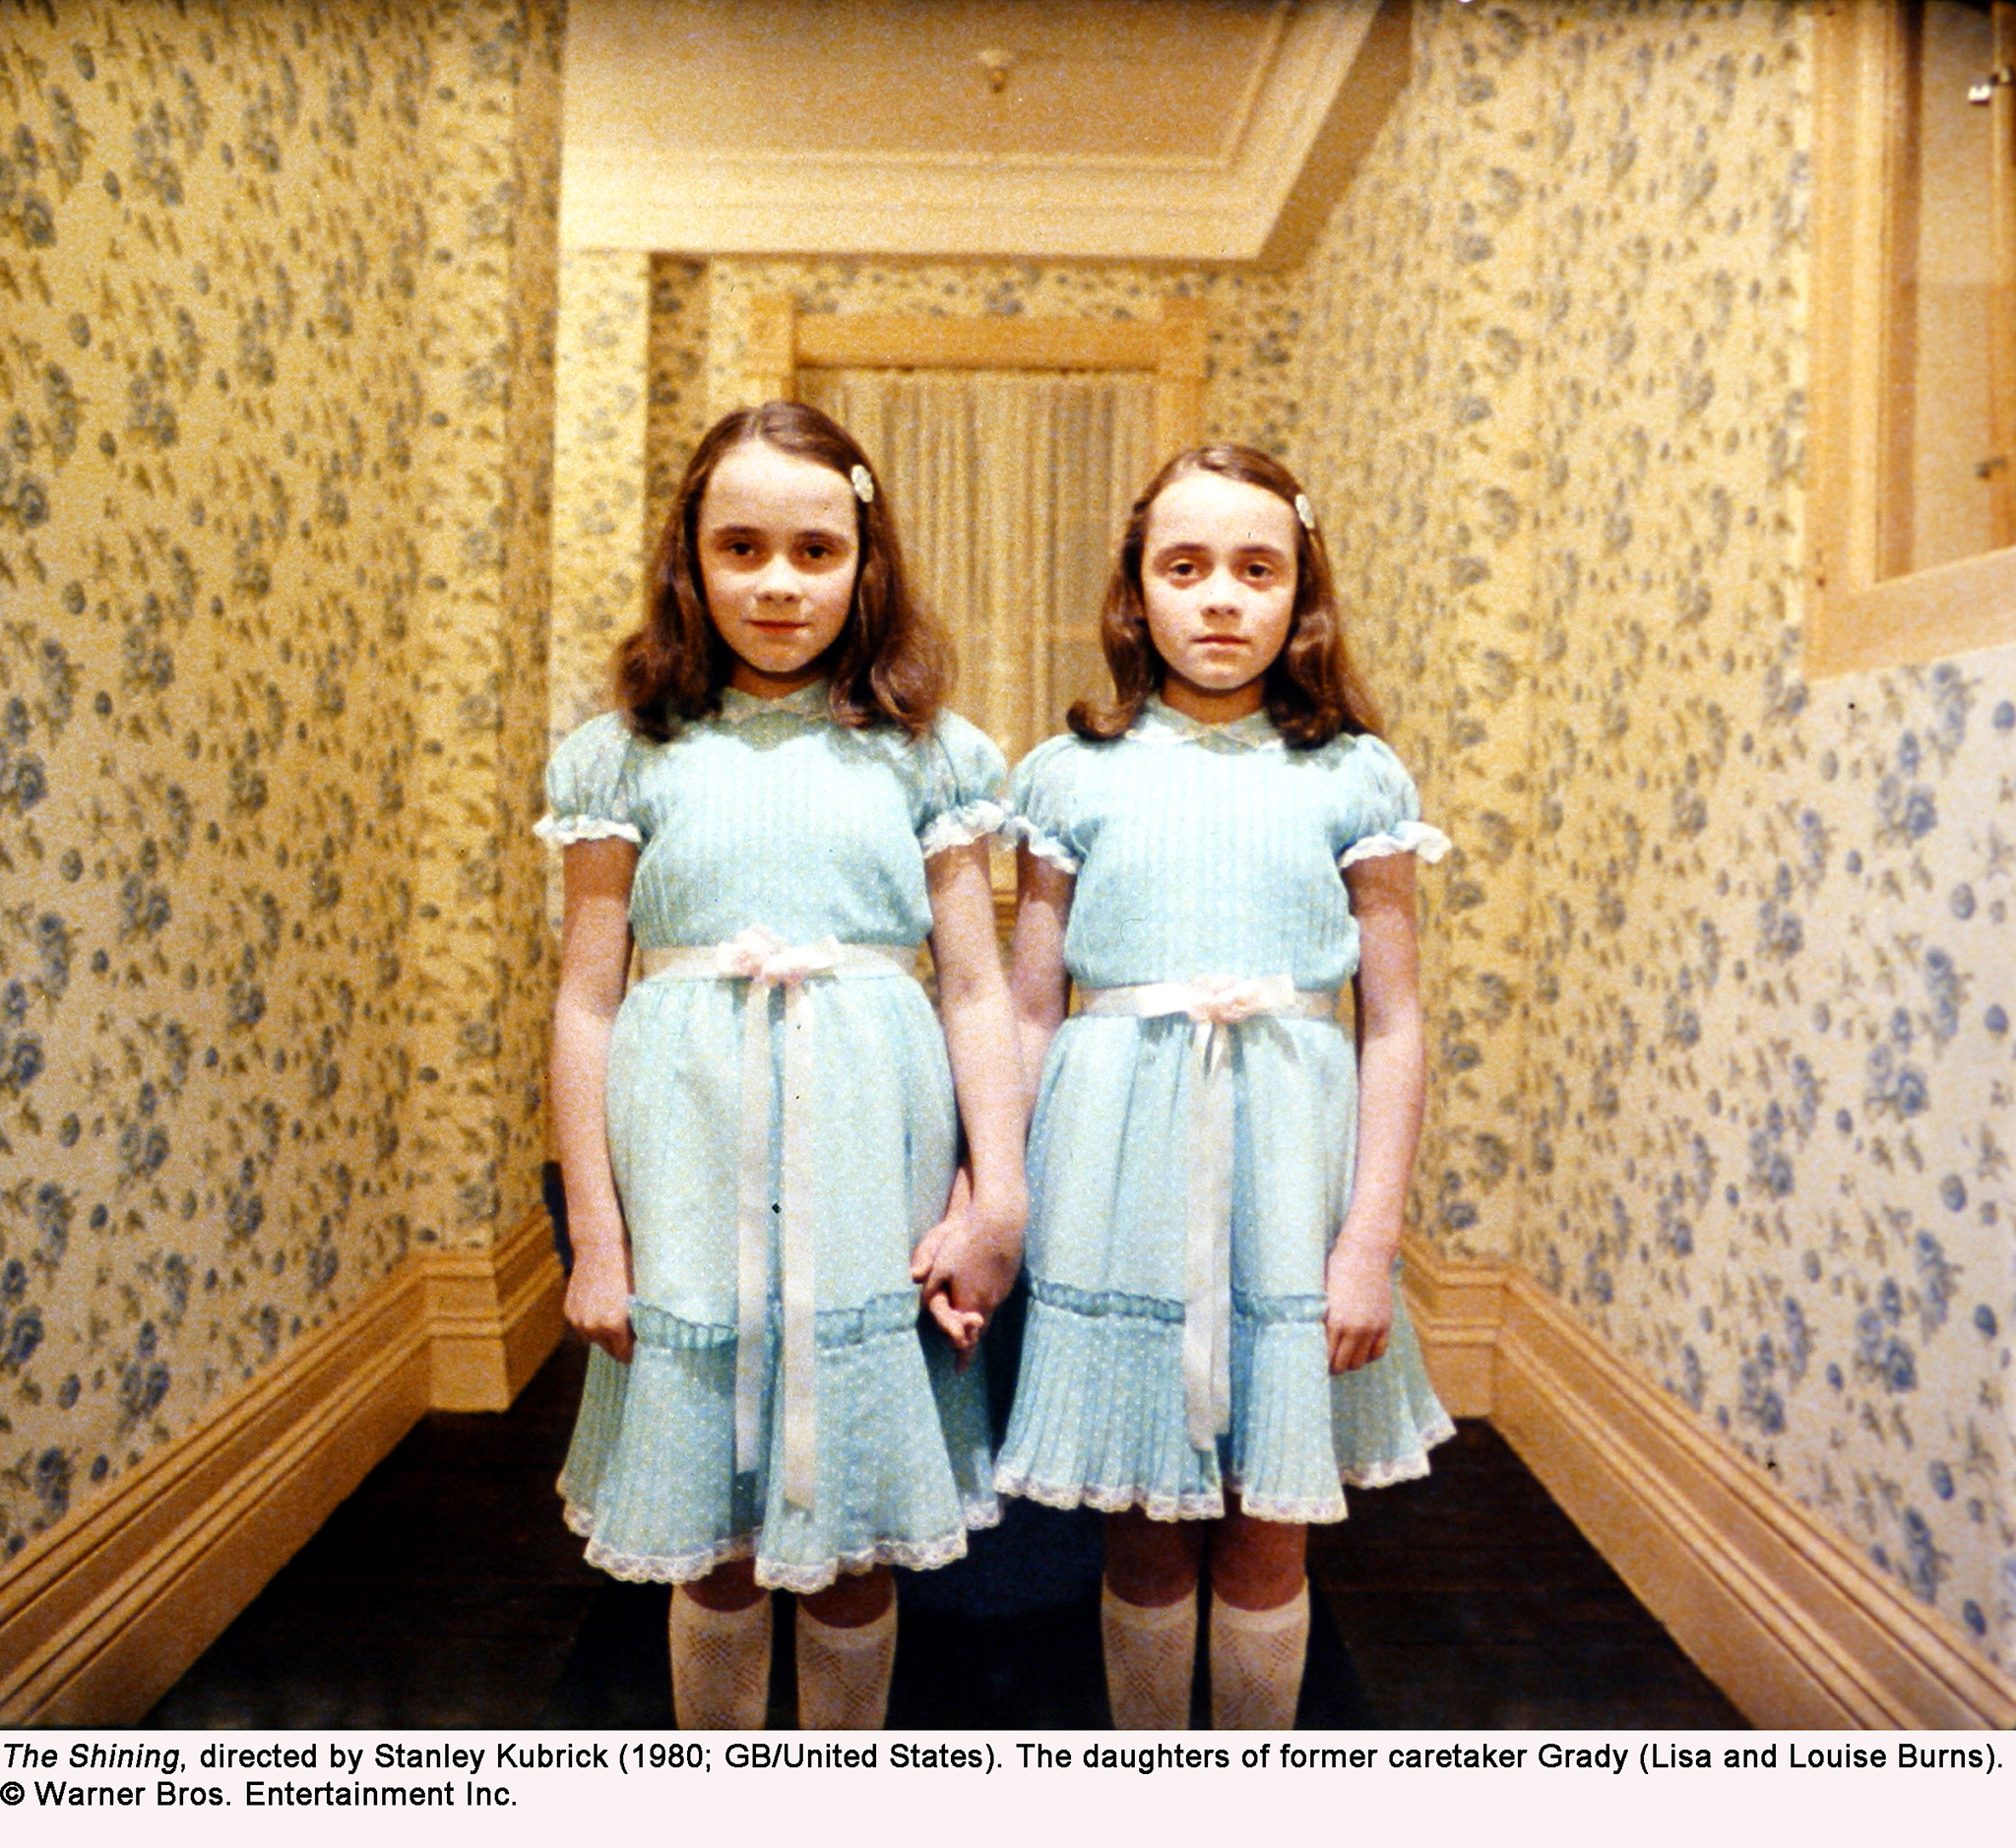 Best art exhibition of 2013: Stanley Kubrick